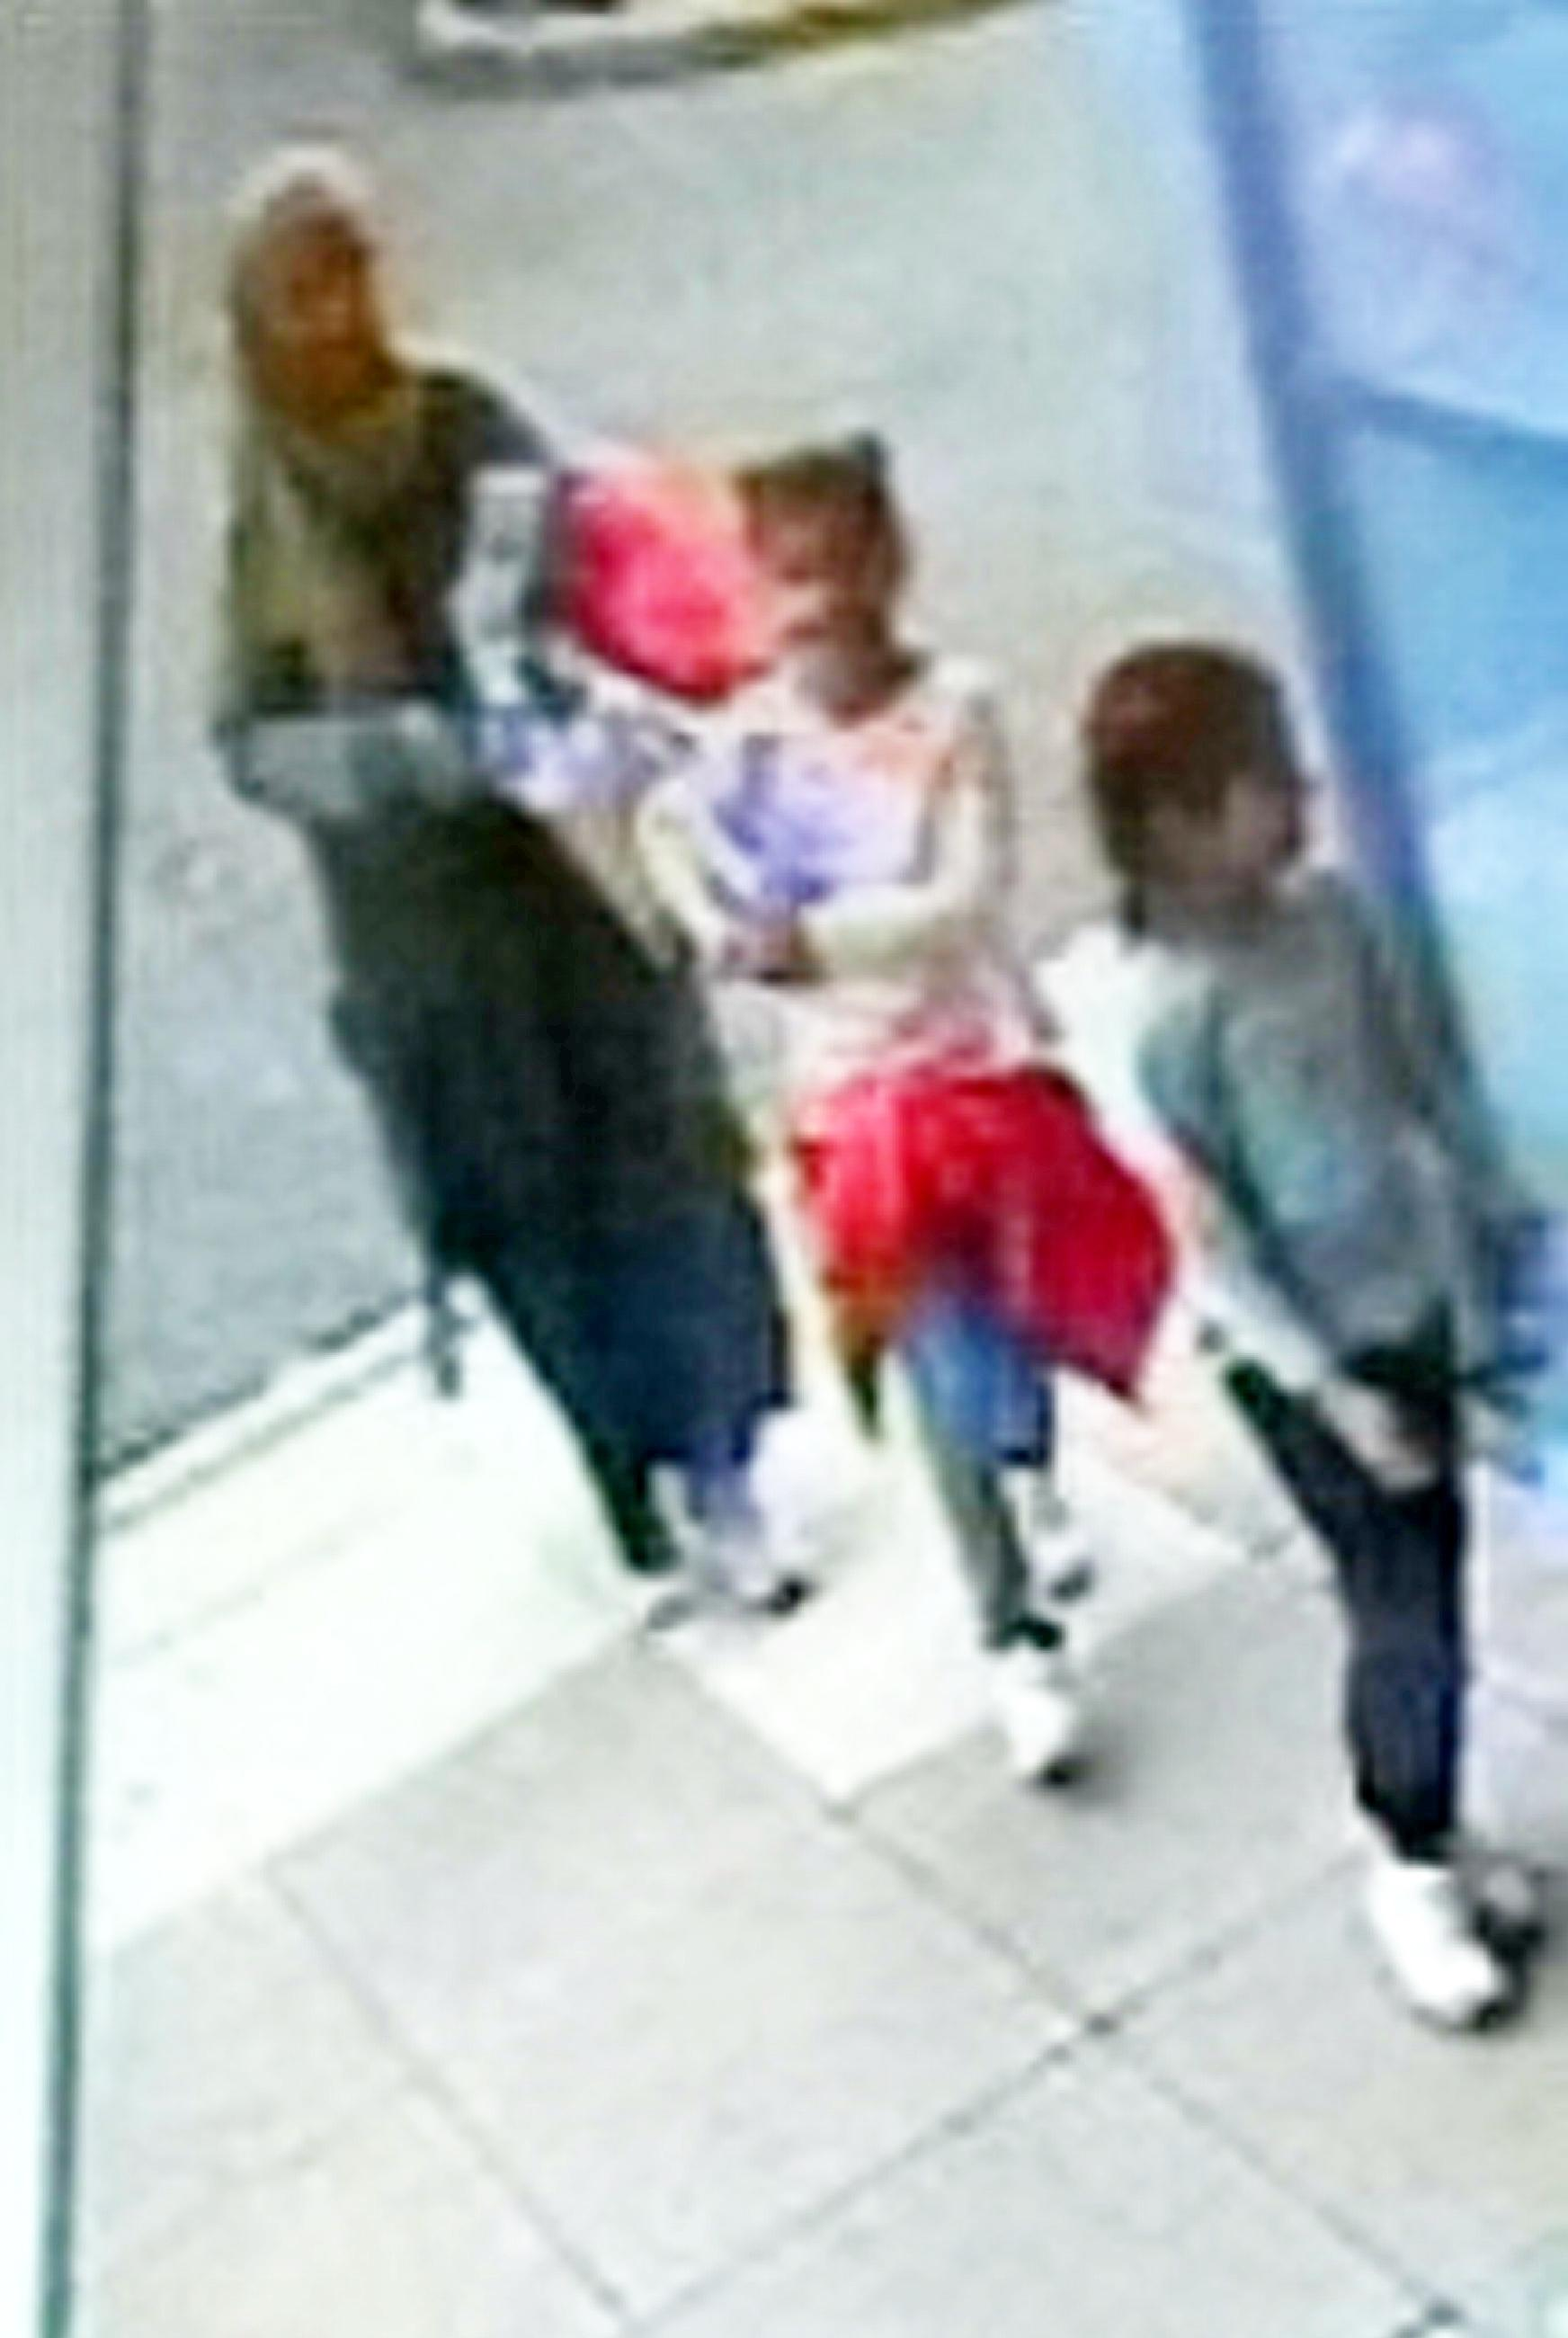 Staffordshire Police have appealed for any information about the mother and her daughters (Picture: SWNS)